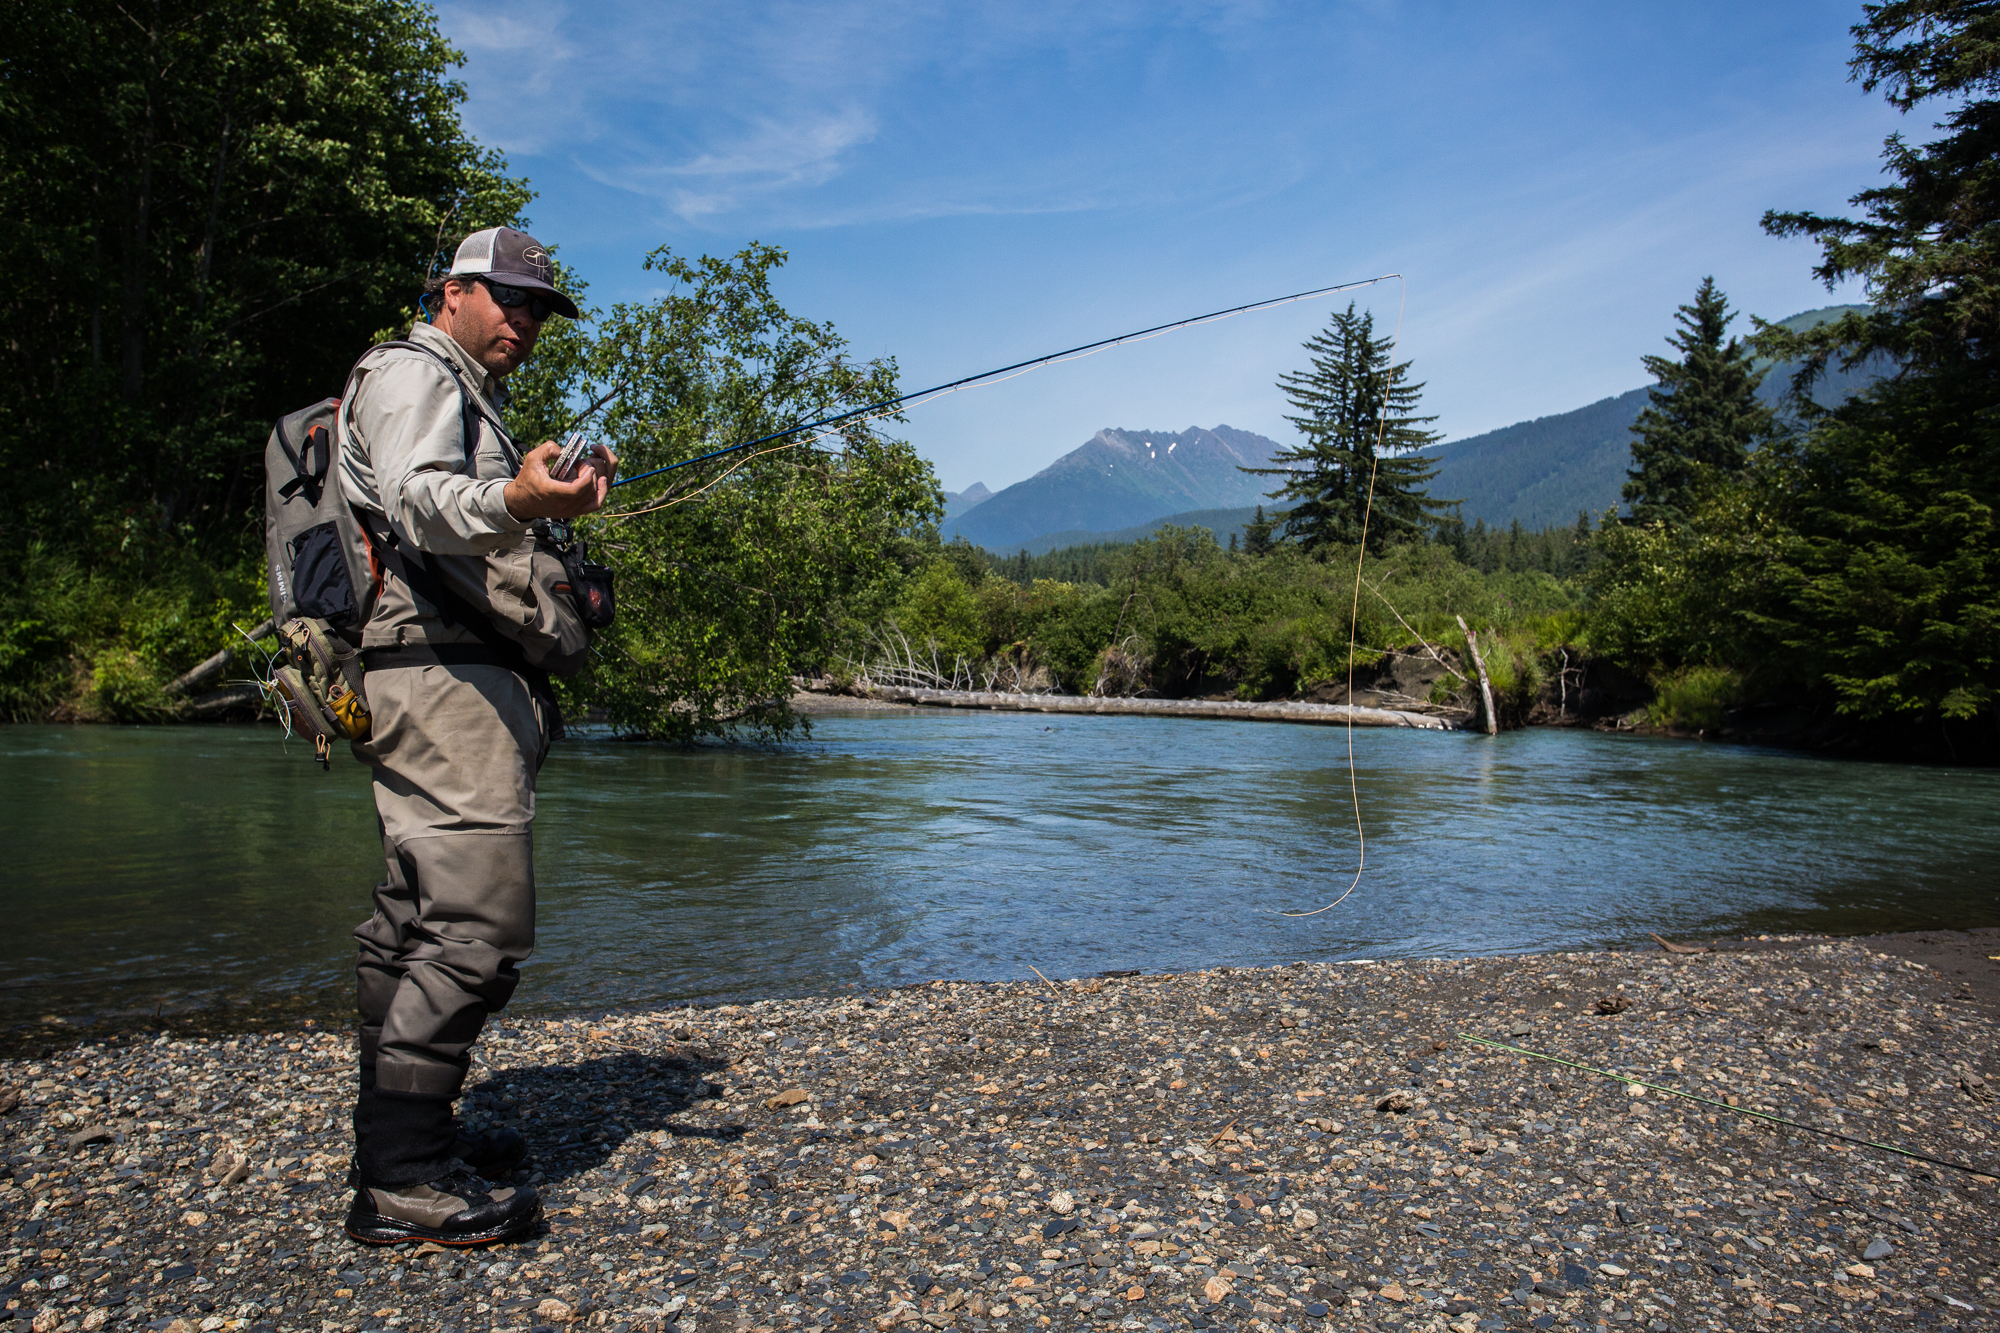 Temperatures having soared into the eighties and the mid-afternoon sun beats down through uncharacteristic bluebird skies. With the number of pink salmon brought to hand long into the hundreds, it is easy to take a seat, despite the otherworldly fish catching opportunities that lay just feet away. Still, guide Mark Heironymous, the only one present that has regular access to the bounty of the Tongass, rebuilds his rig to chase a few fat pinks that are sunning themselves in a back eddy not far below.